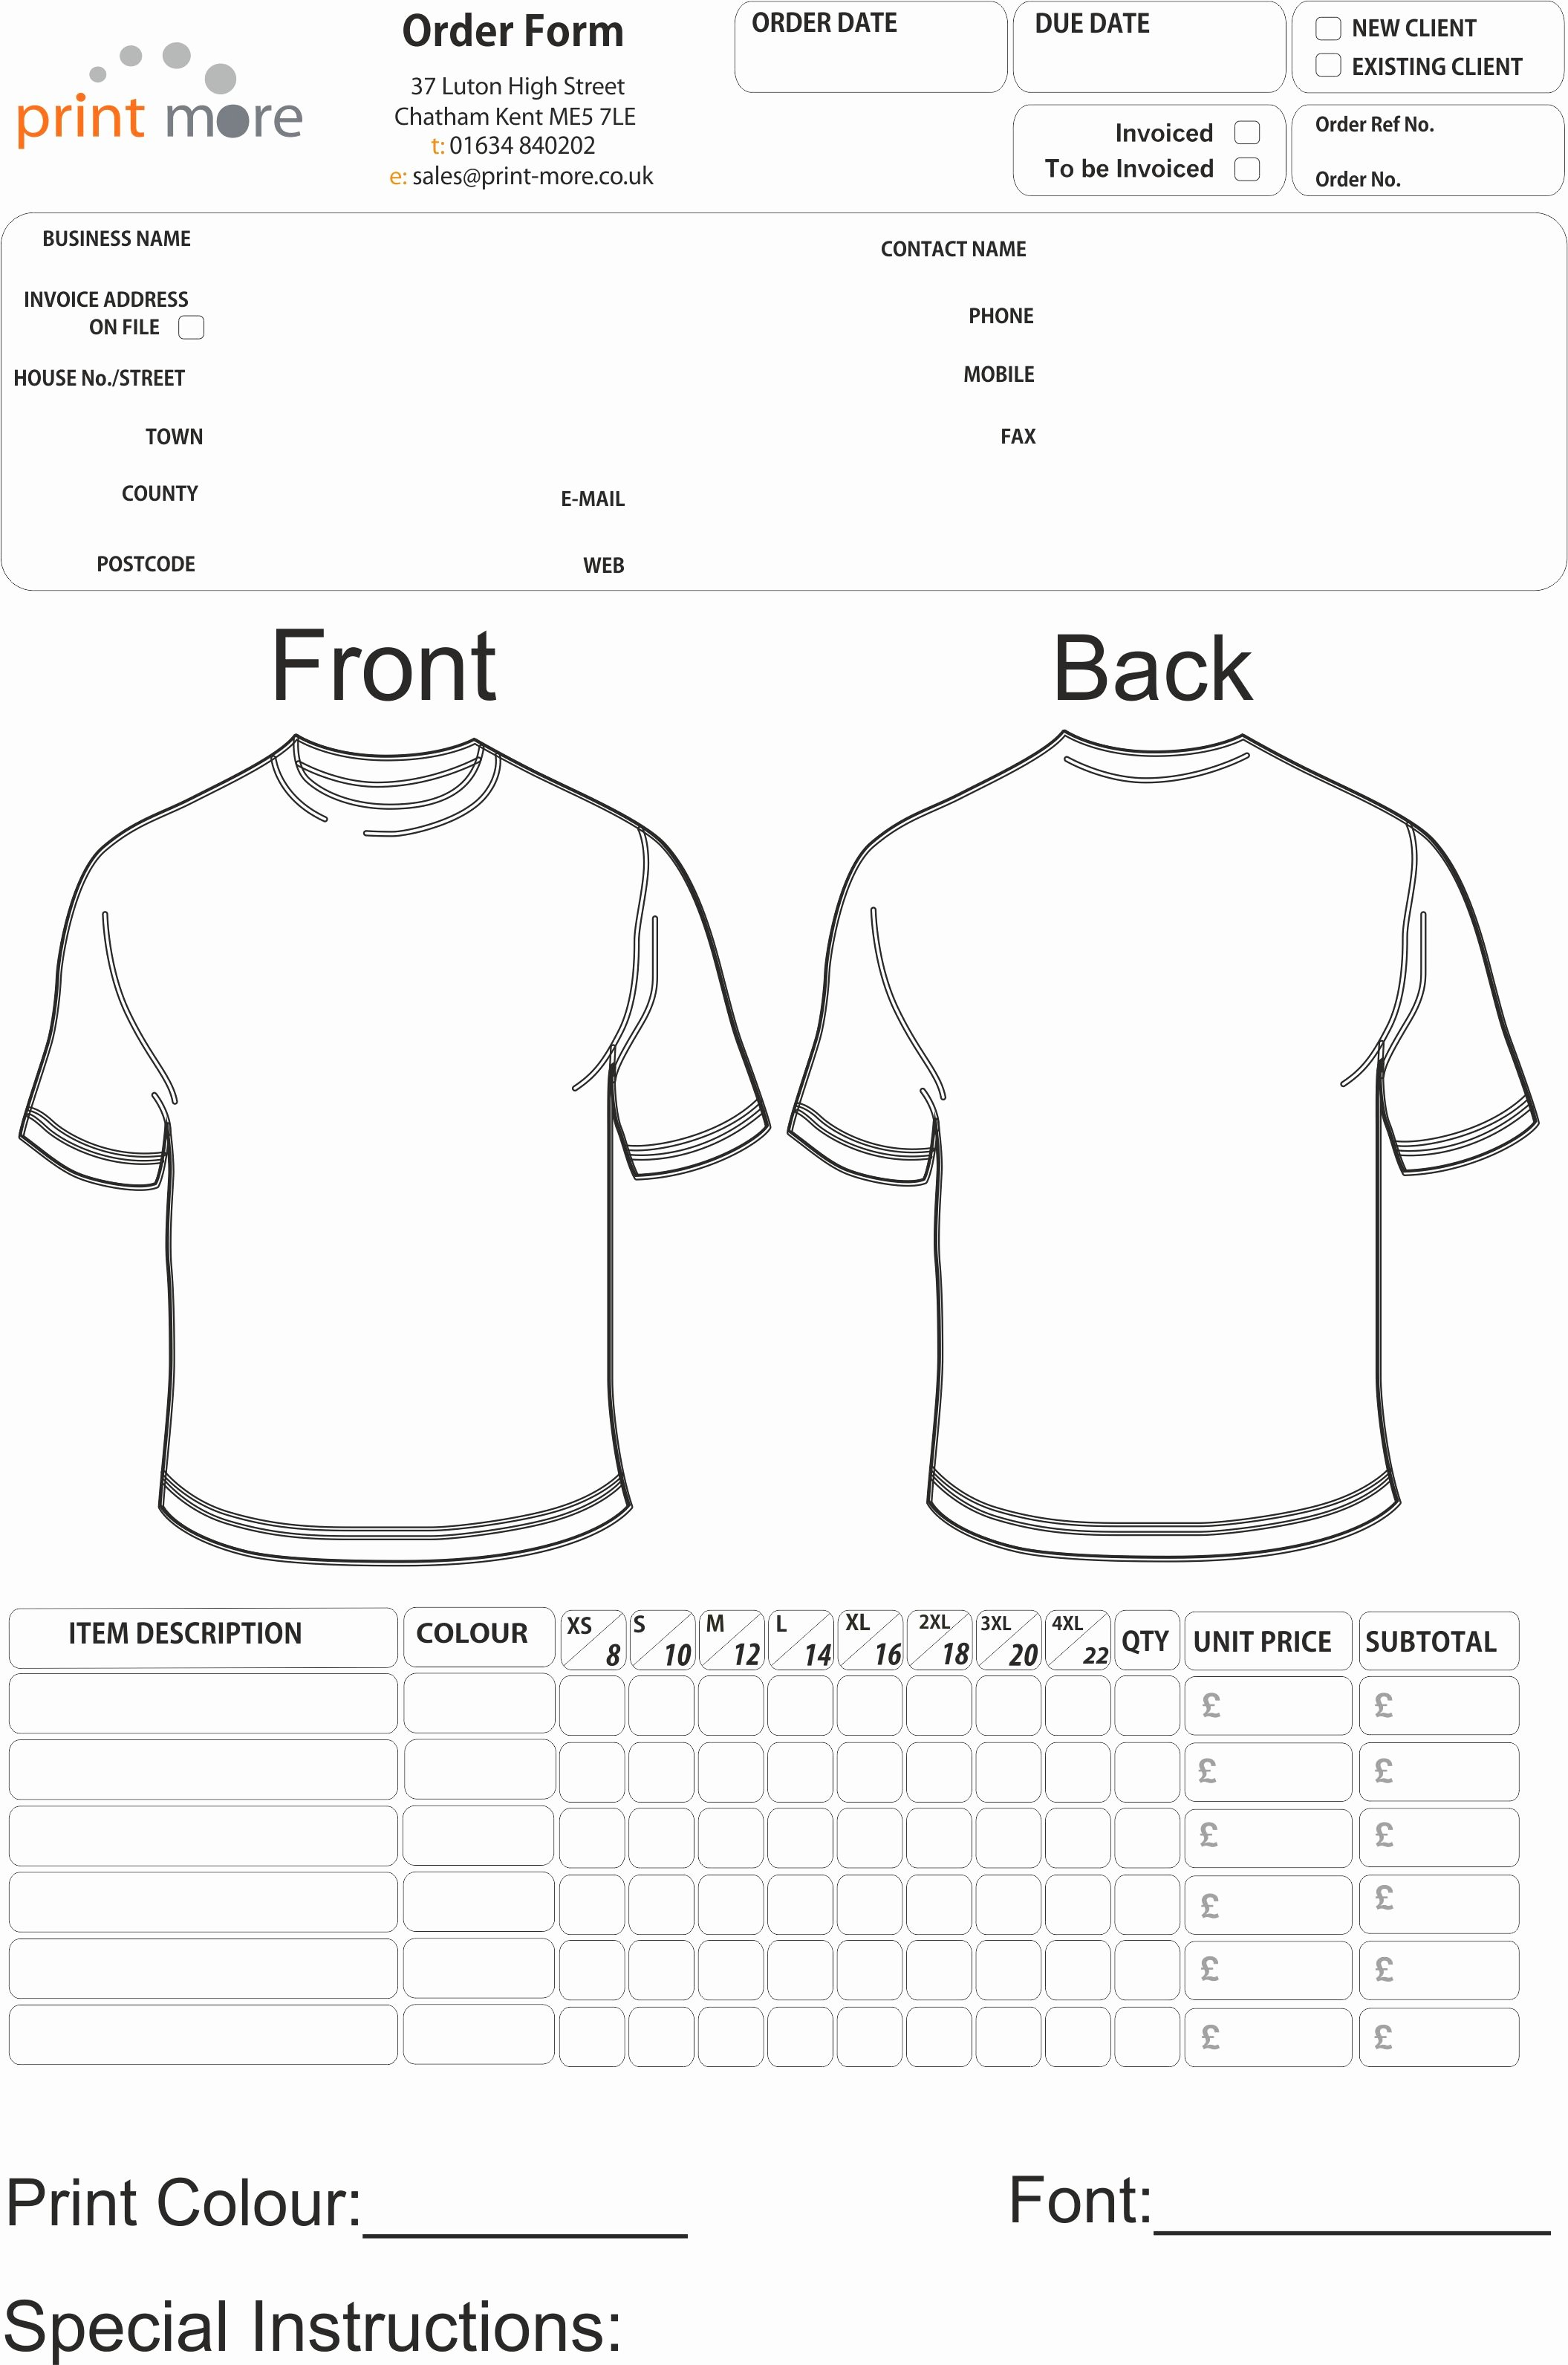 Embroidery order form Template New T Shirt order form Template